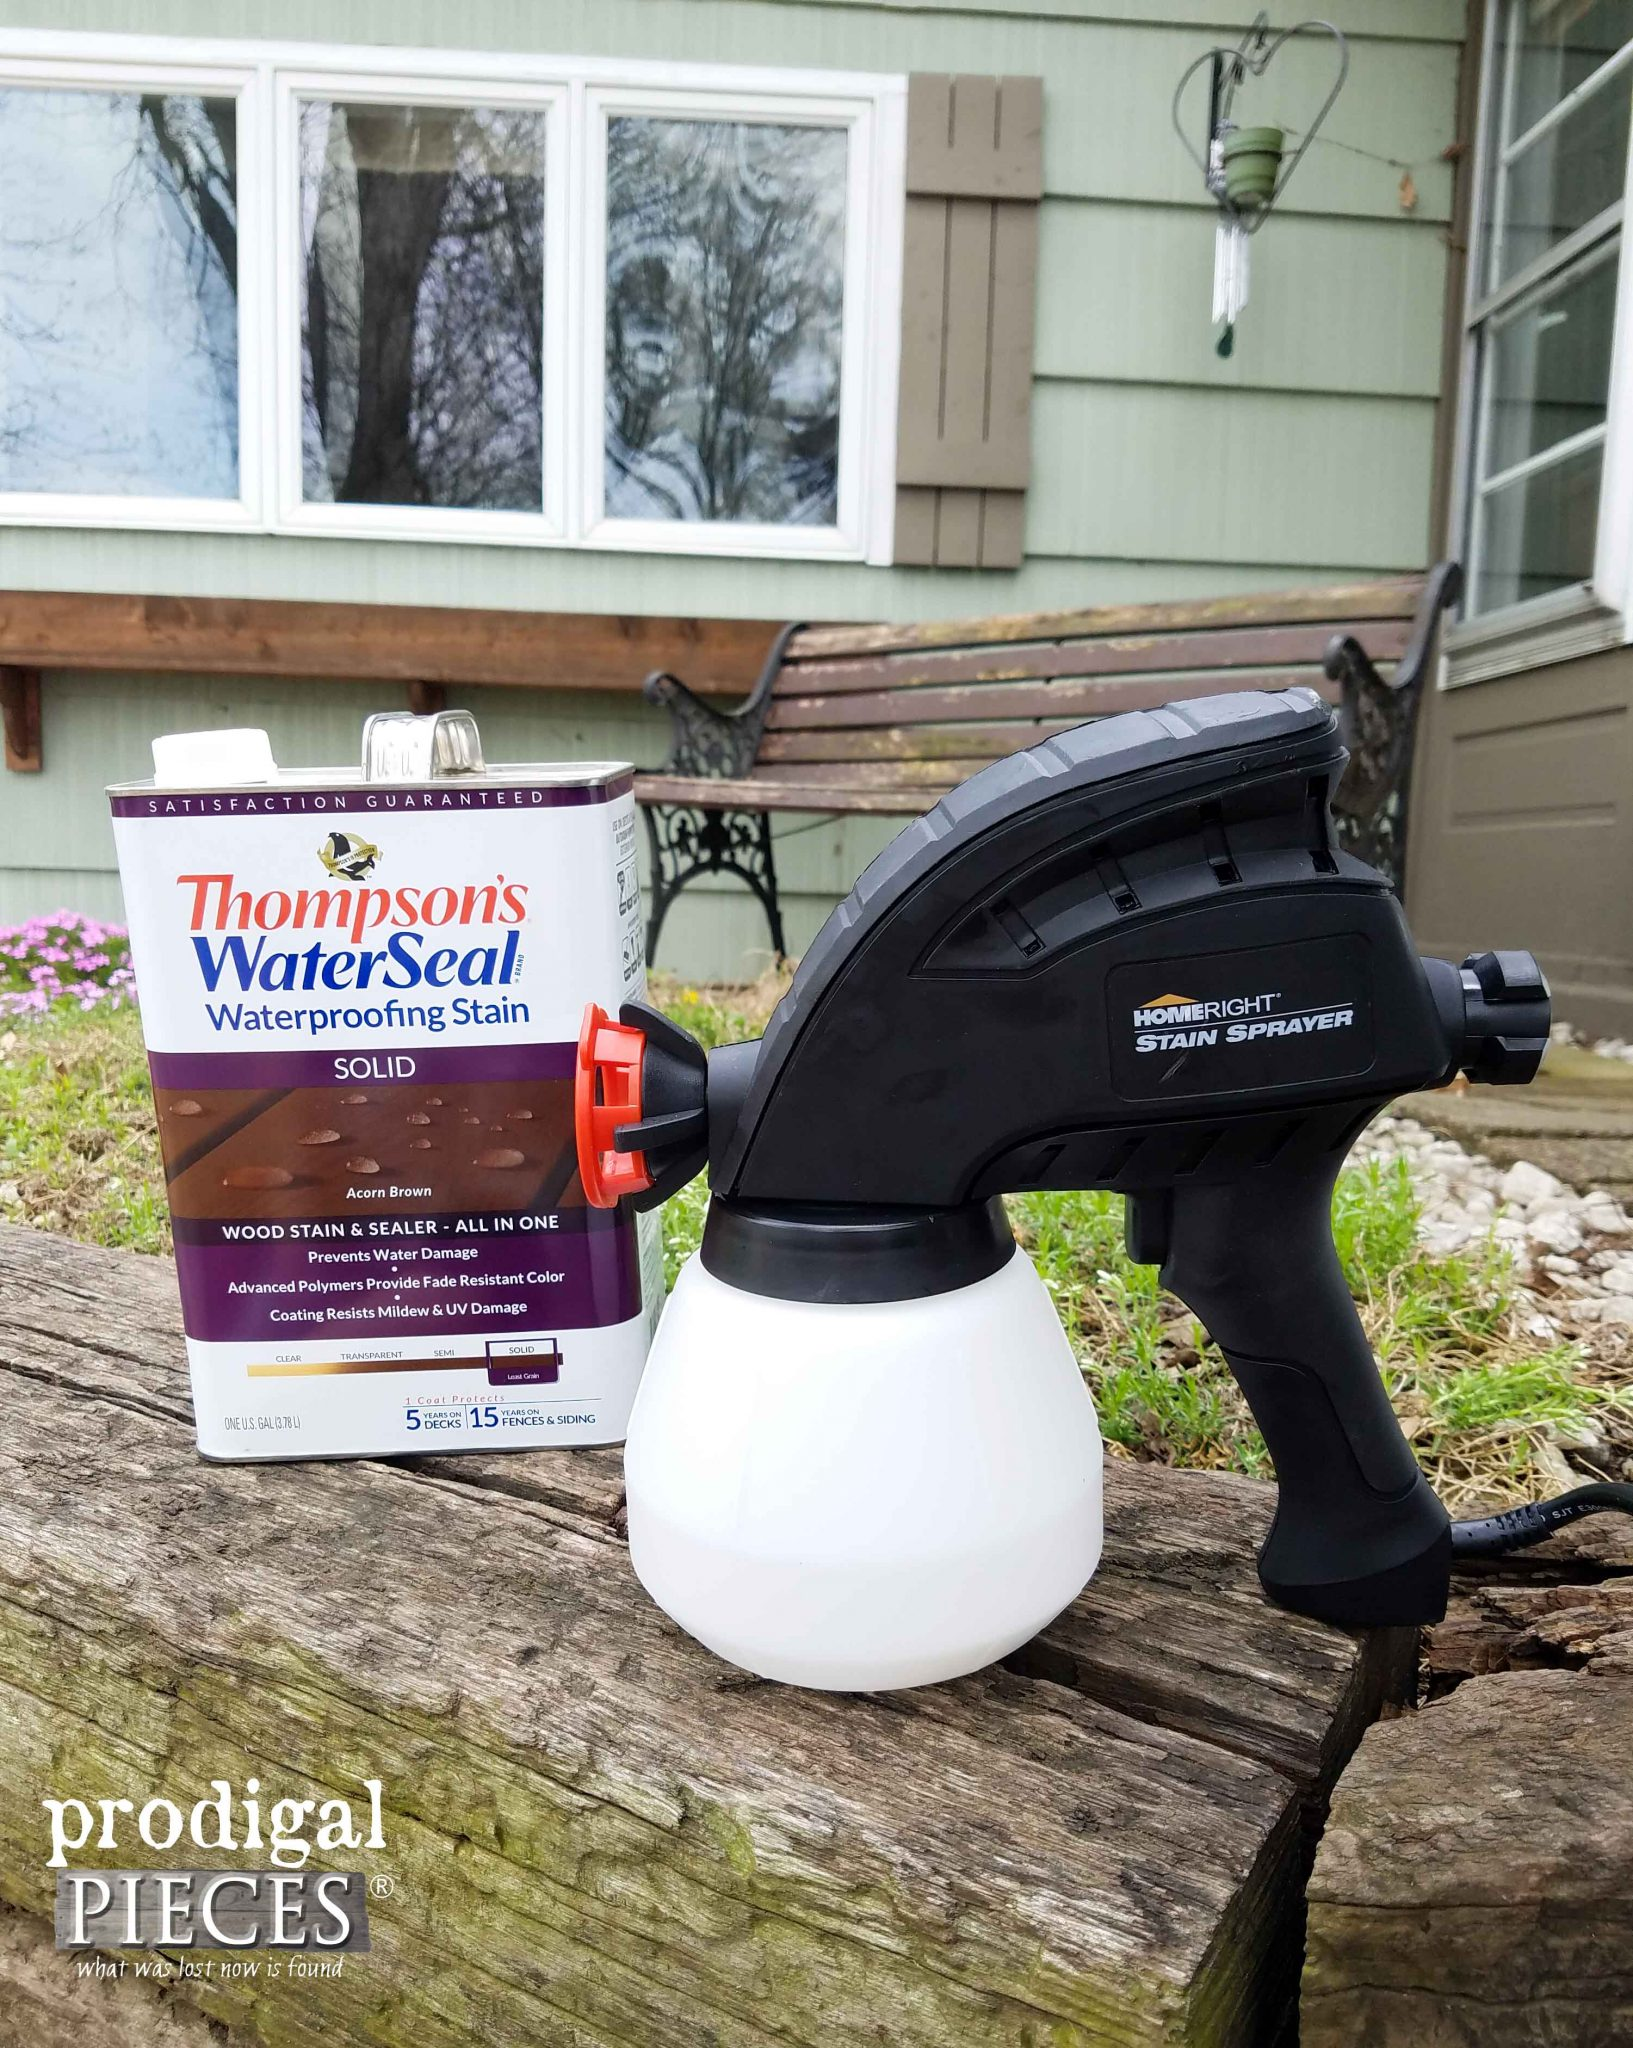 Thompson's WaterSeal and HomeRight Stain Sprayer for Planter Finish | Prodigal Pieces | prodigalpieces.com